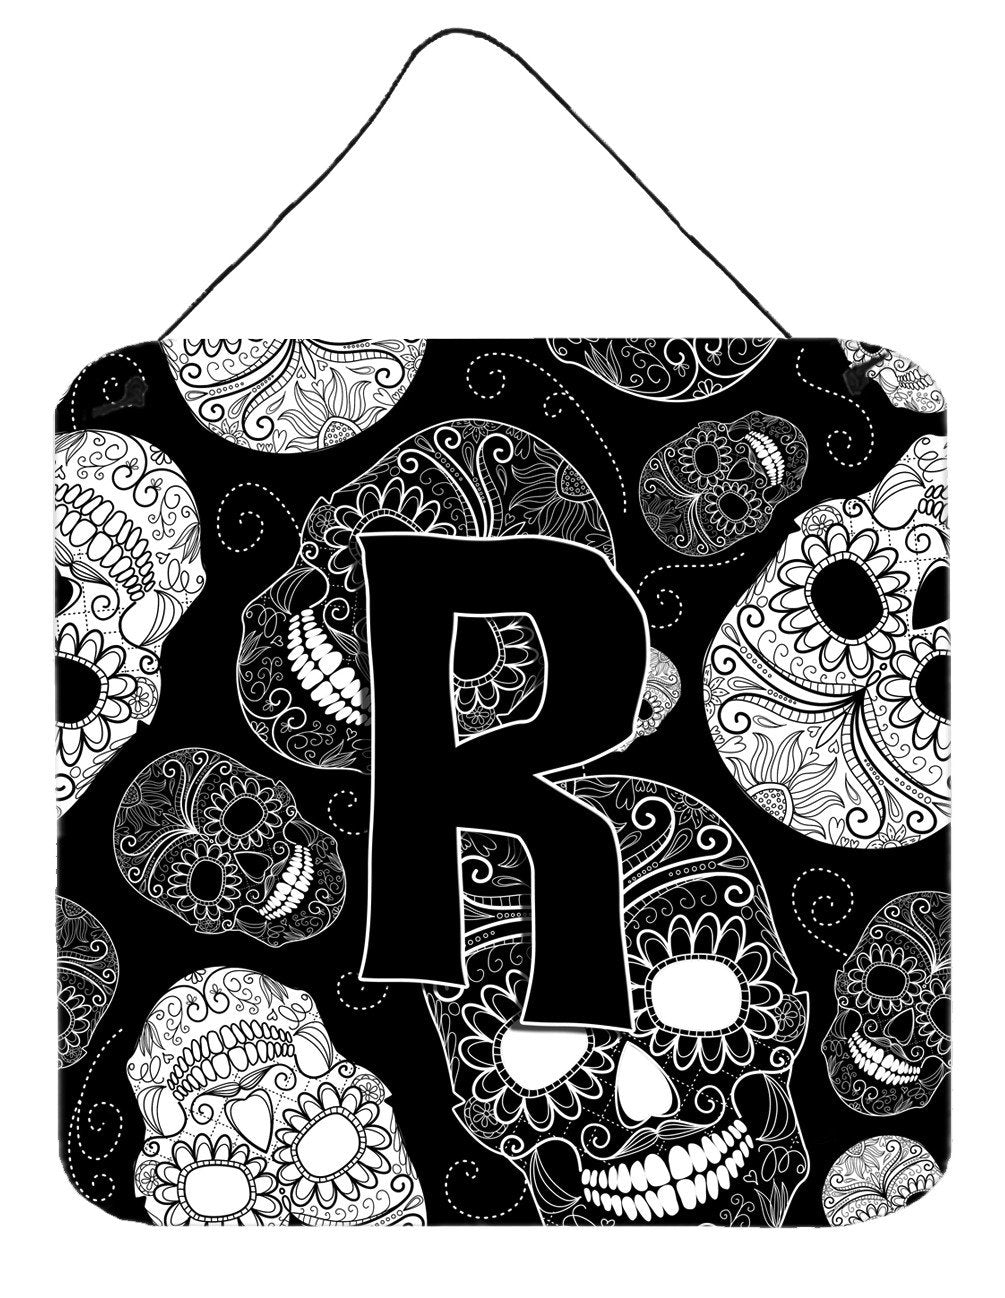 Letter R Day of the Dead Skulls Black Wall or Door Hanging Prints CJ2008-RDS66 by Caroline's Treasures